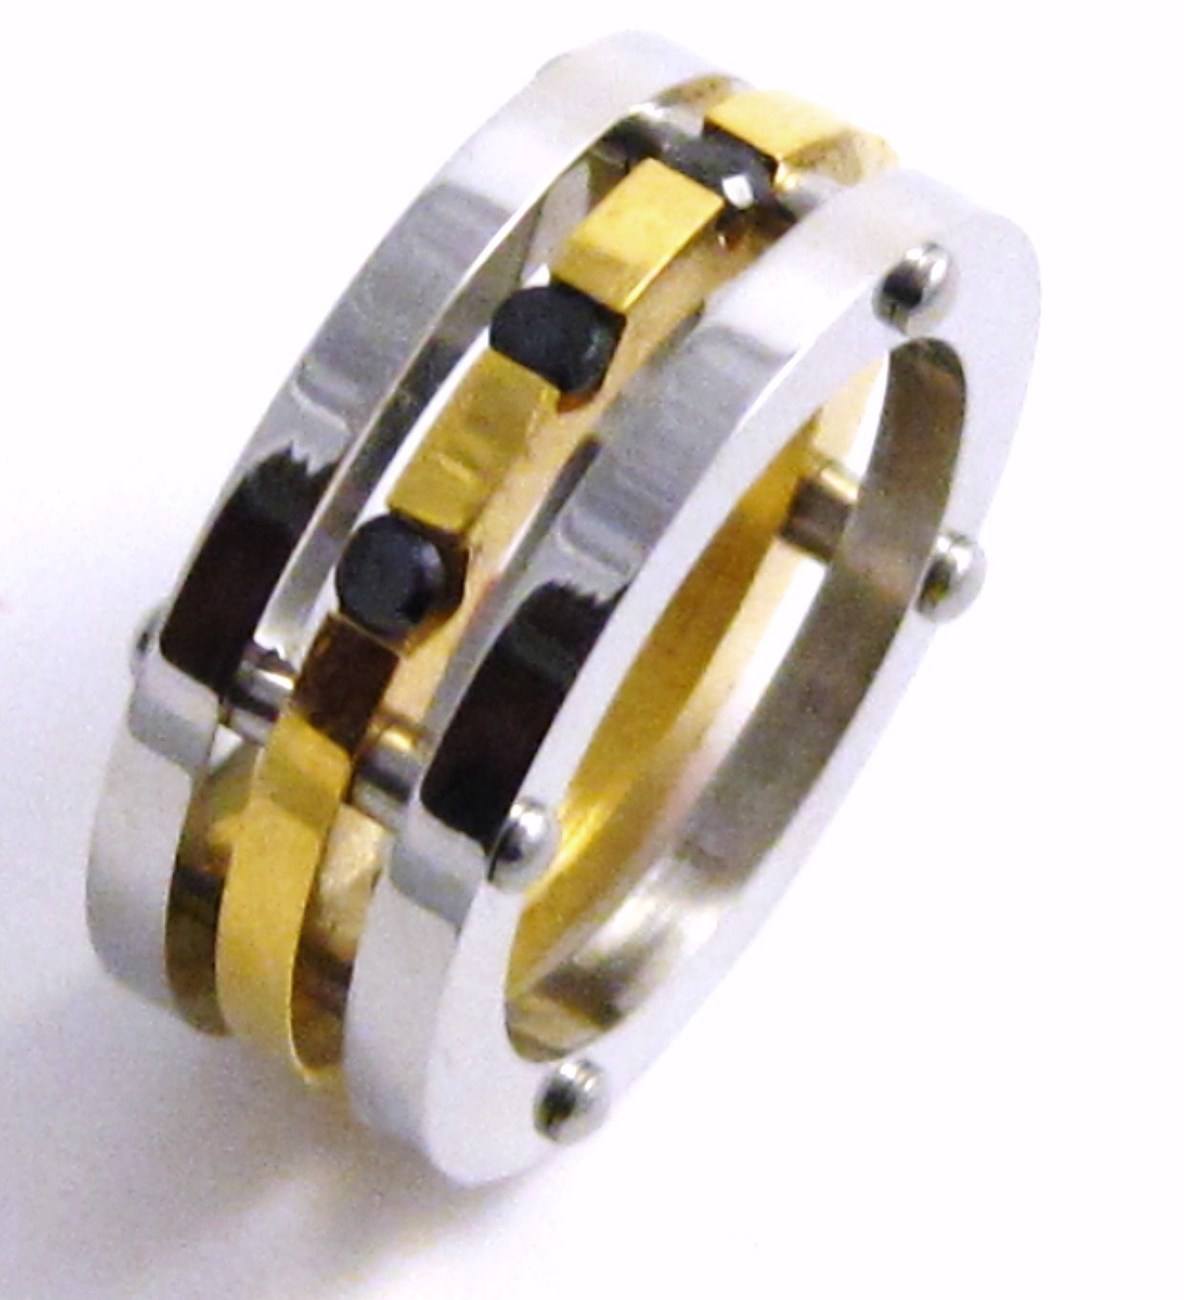 Unisex Gold Stainless Steel Ring Black CZ SSR5107